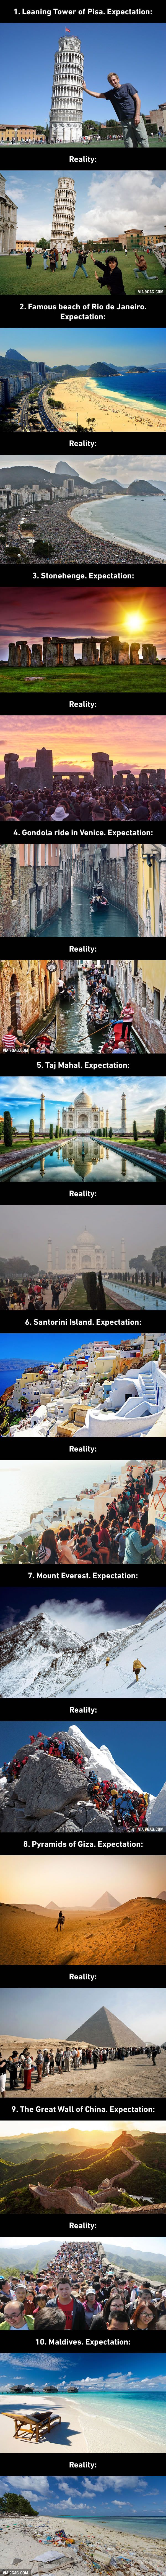 Top 10 Travel Expectations Vs Reality Which May Make You Rethink Your Vacation - 9GAG